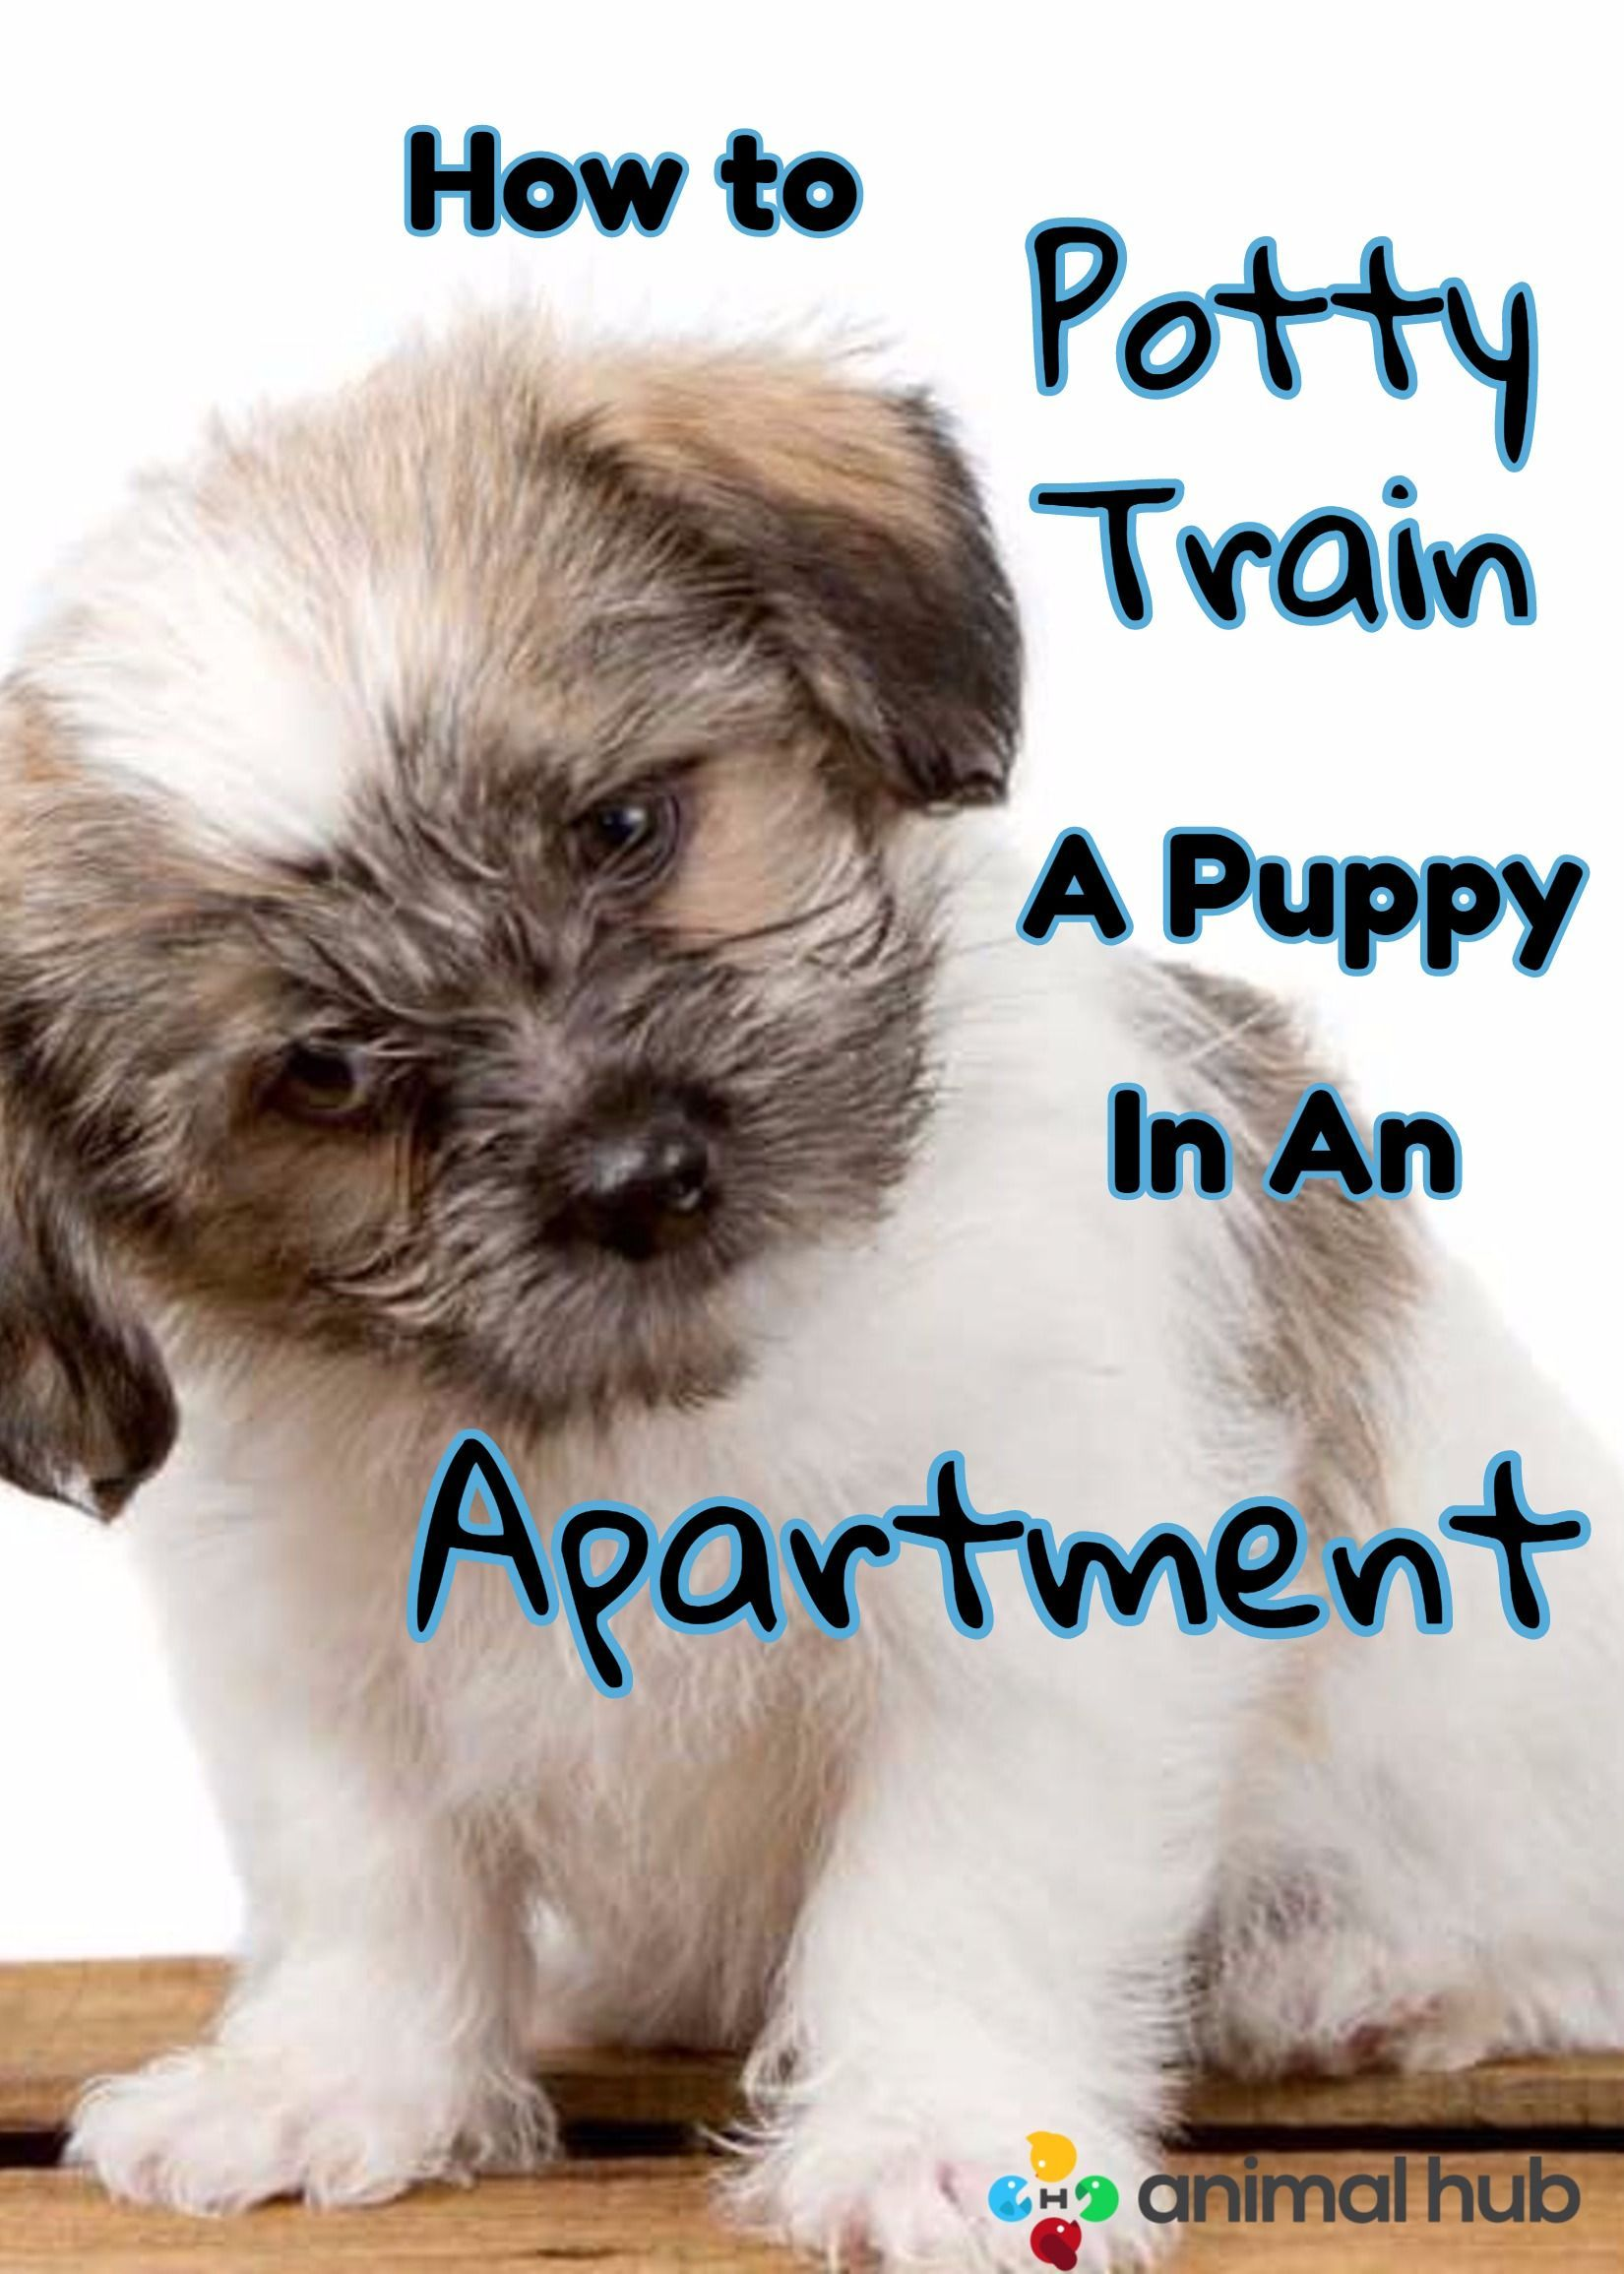 How To Potty Train A Puppy In An Apartment Animal Hub Https Www Animalhub Com How To Potty Train House Training Puppies Puppy Training Potty Training Puppy